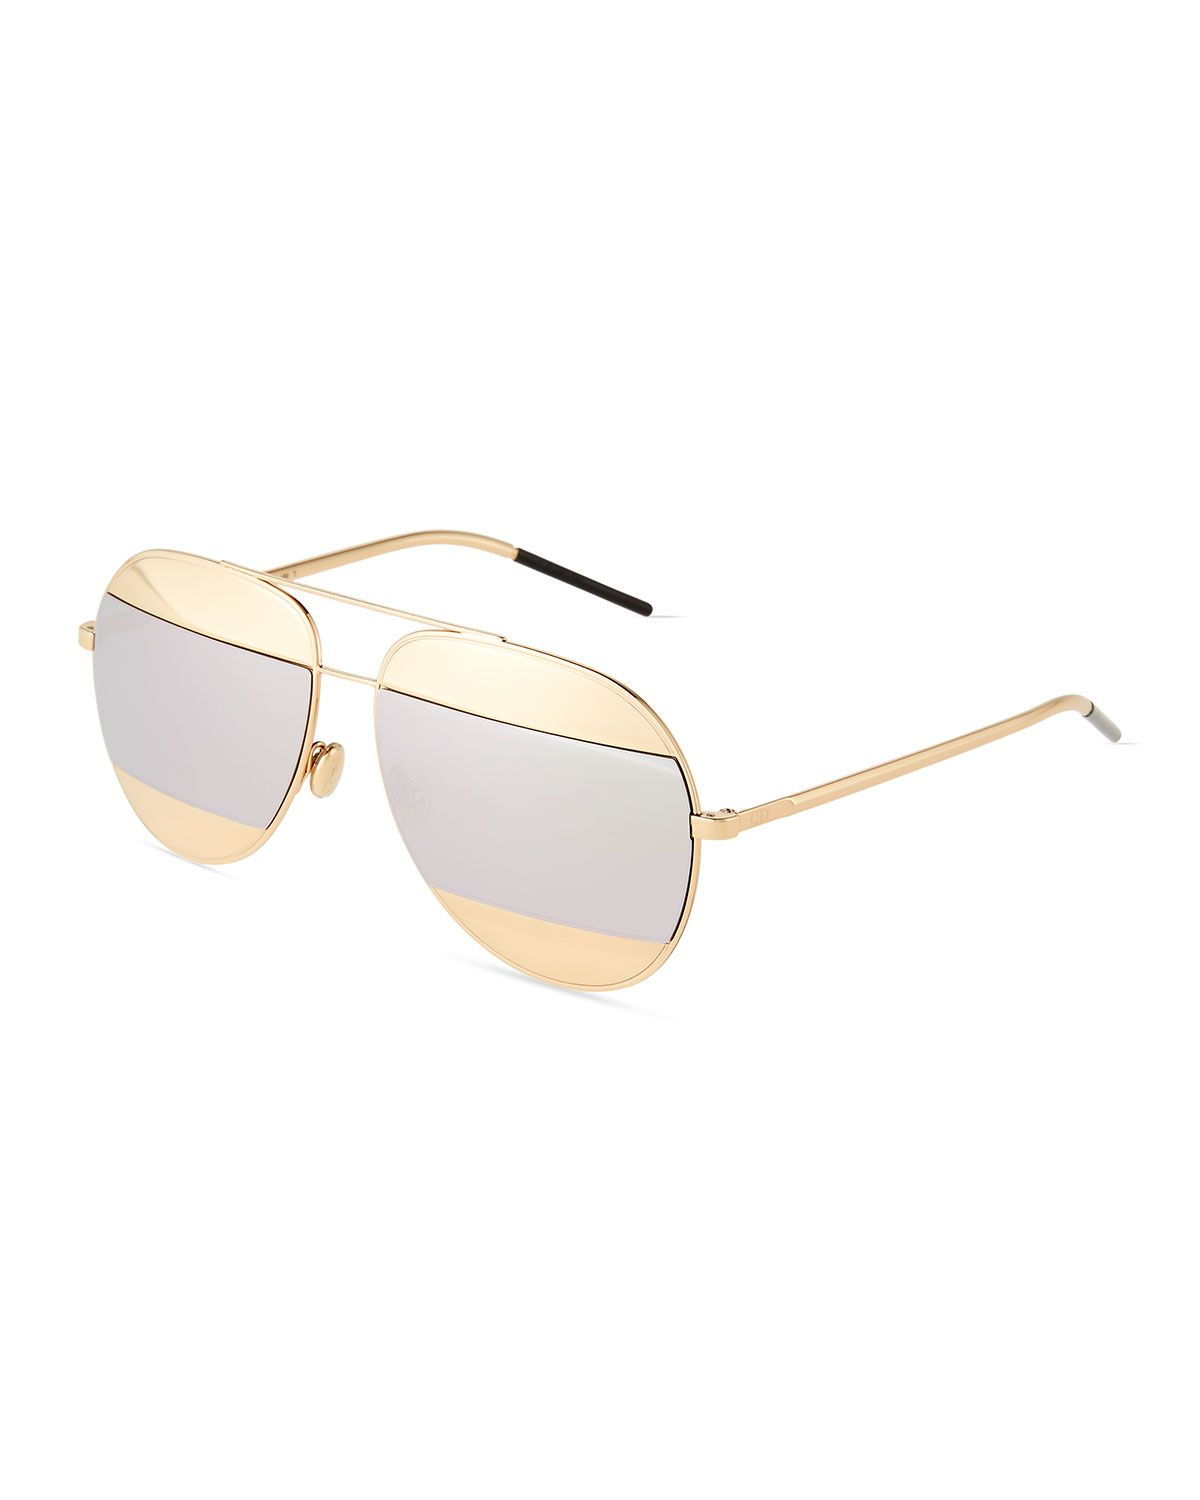 681dbca20ba DiorSplit Two-Tone Metallic Aviator Sunglasses